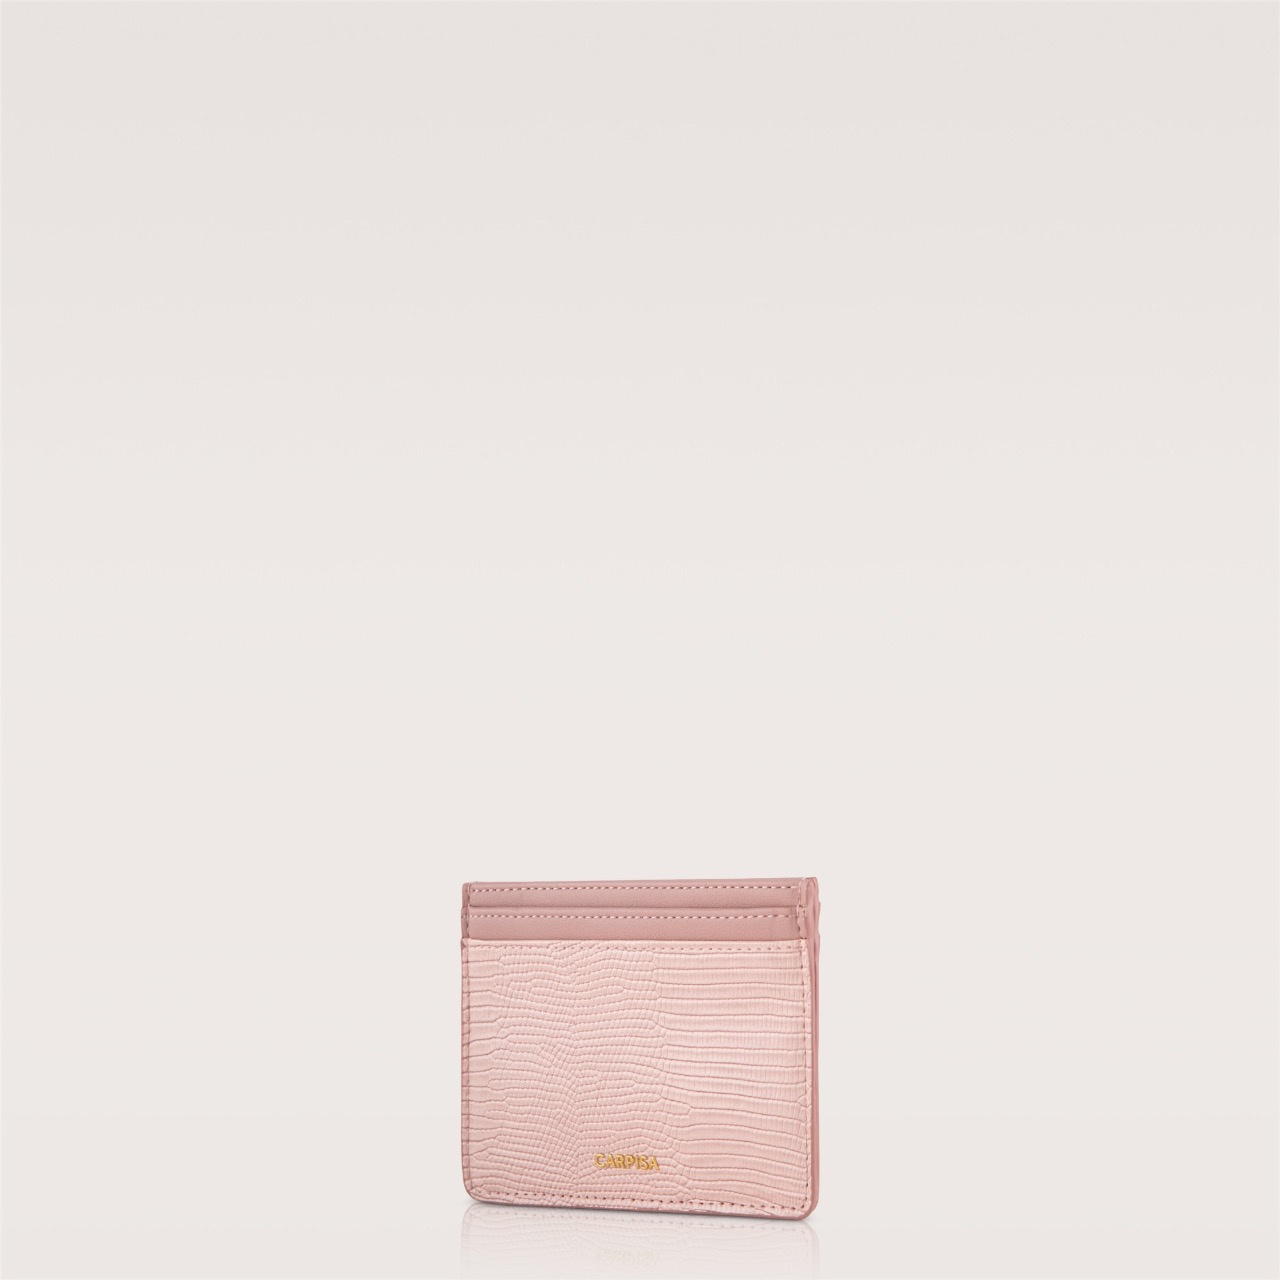 Small-sized credit cardholder - Adriel priced at 1499